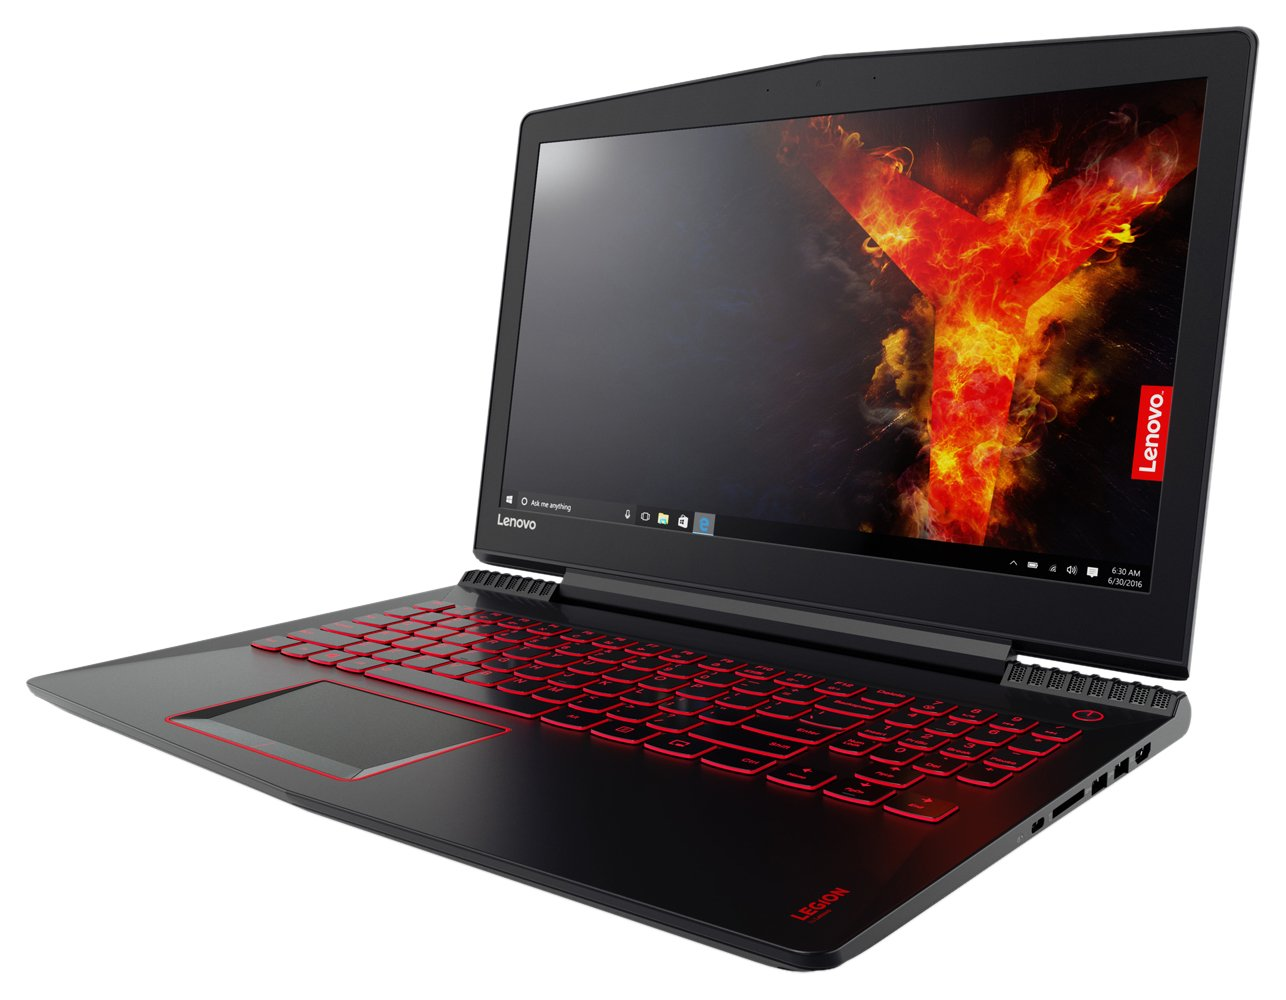 Amazon.com: Lenovo Legion Y520 15.6 inch FHD Gaming Laptop